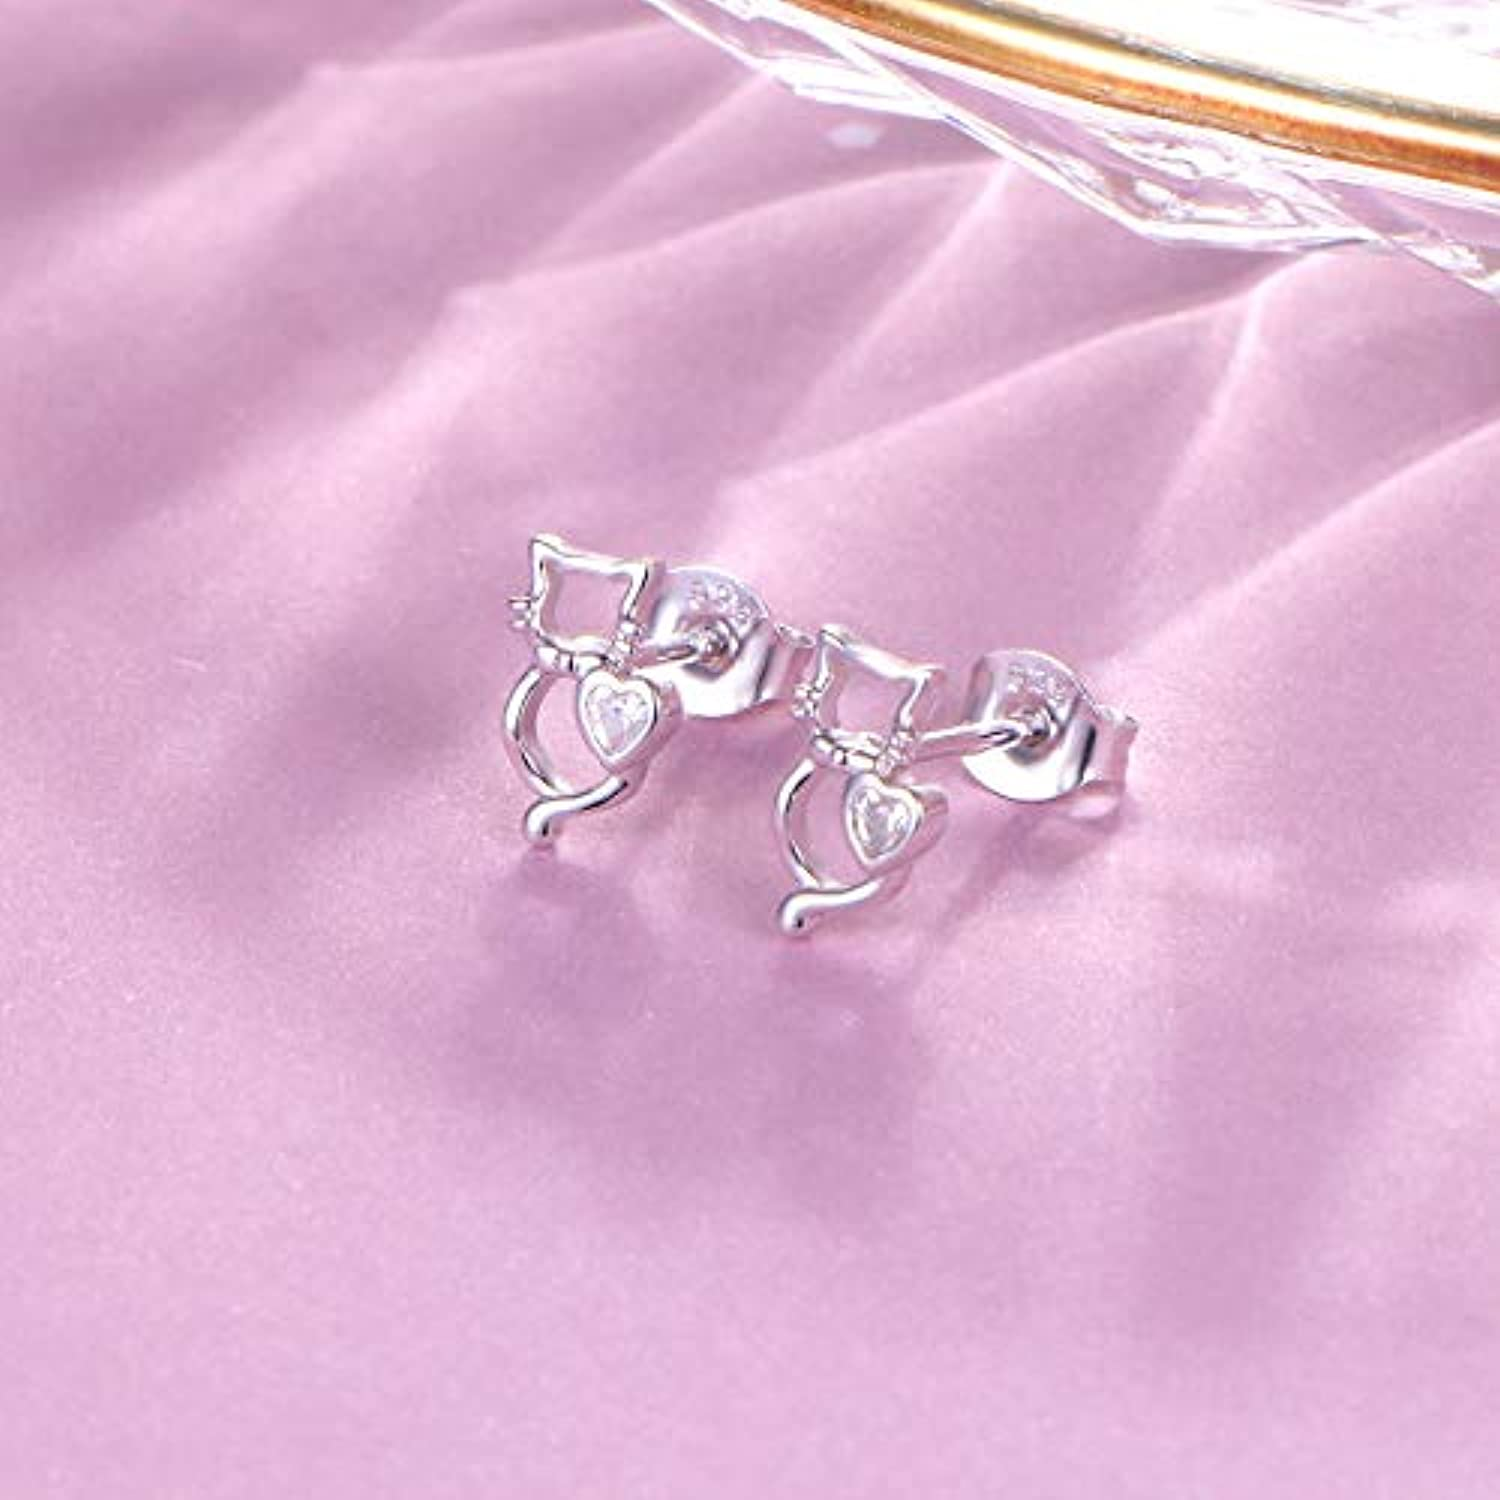 925 Sterling Silver Animal Ear Studs Small Cute Cat Stud Earrings for Women Teen Girls Gift